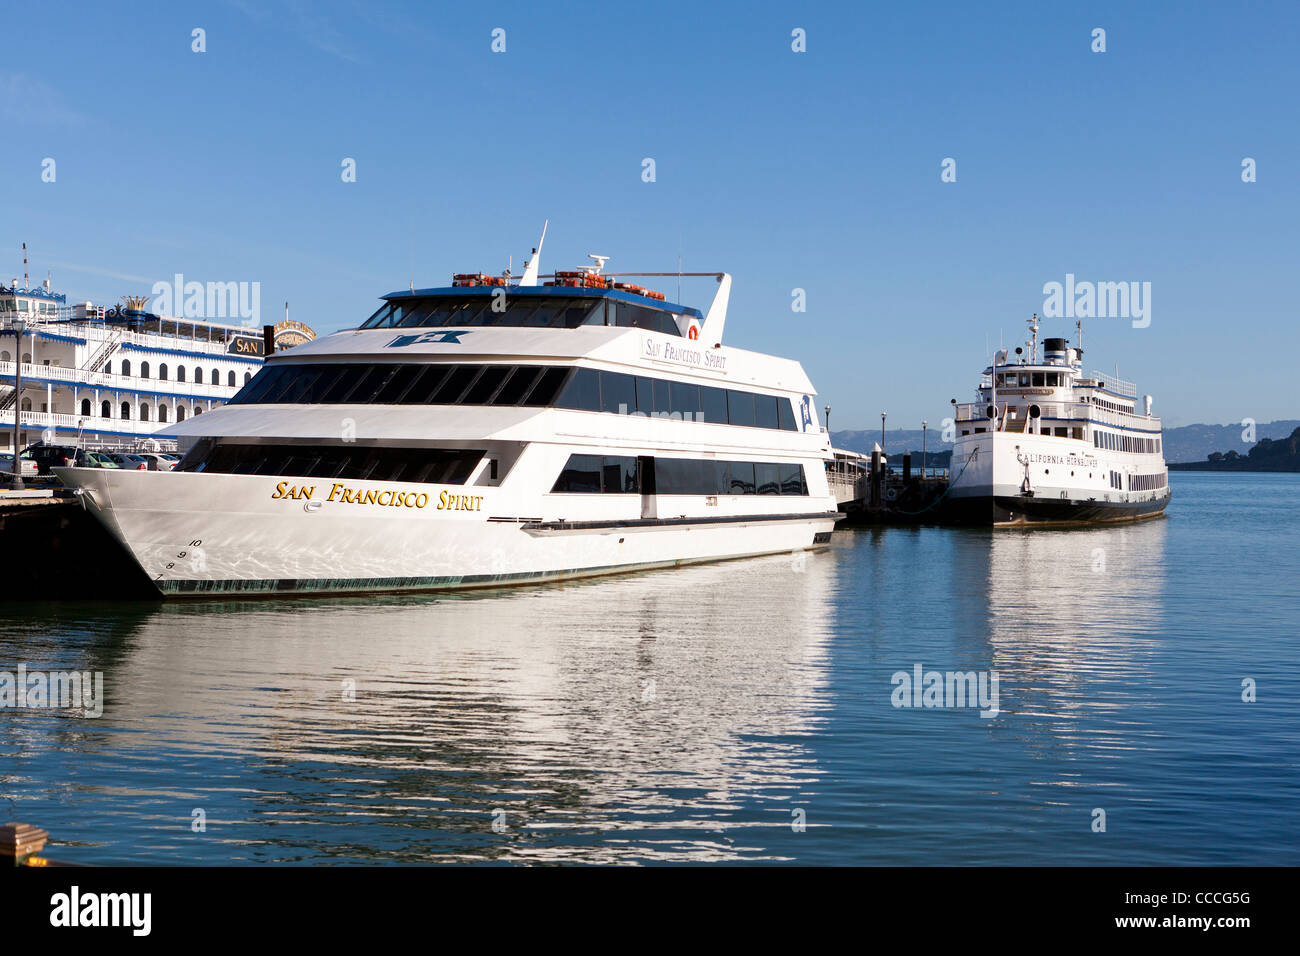 Private charter event cruise boats at dock - Stock Image